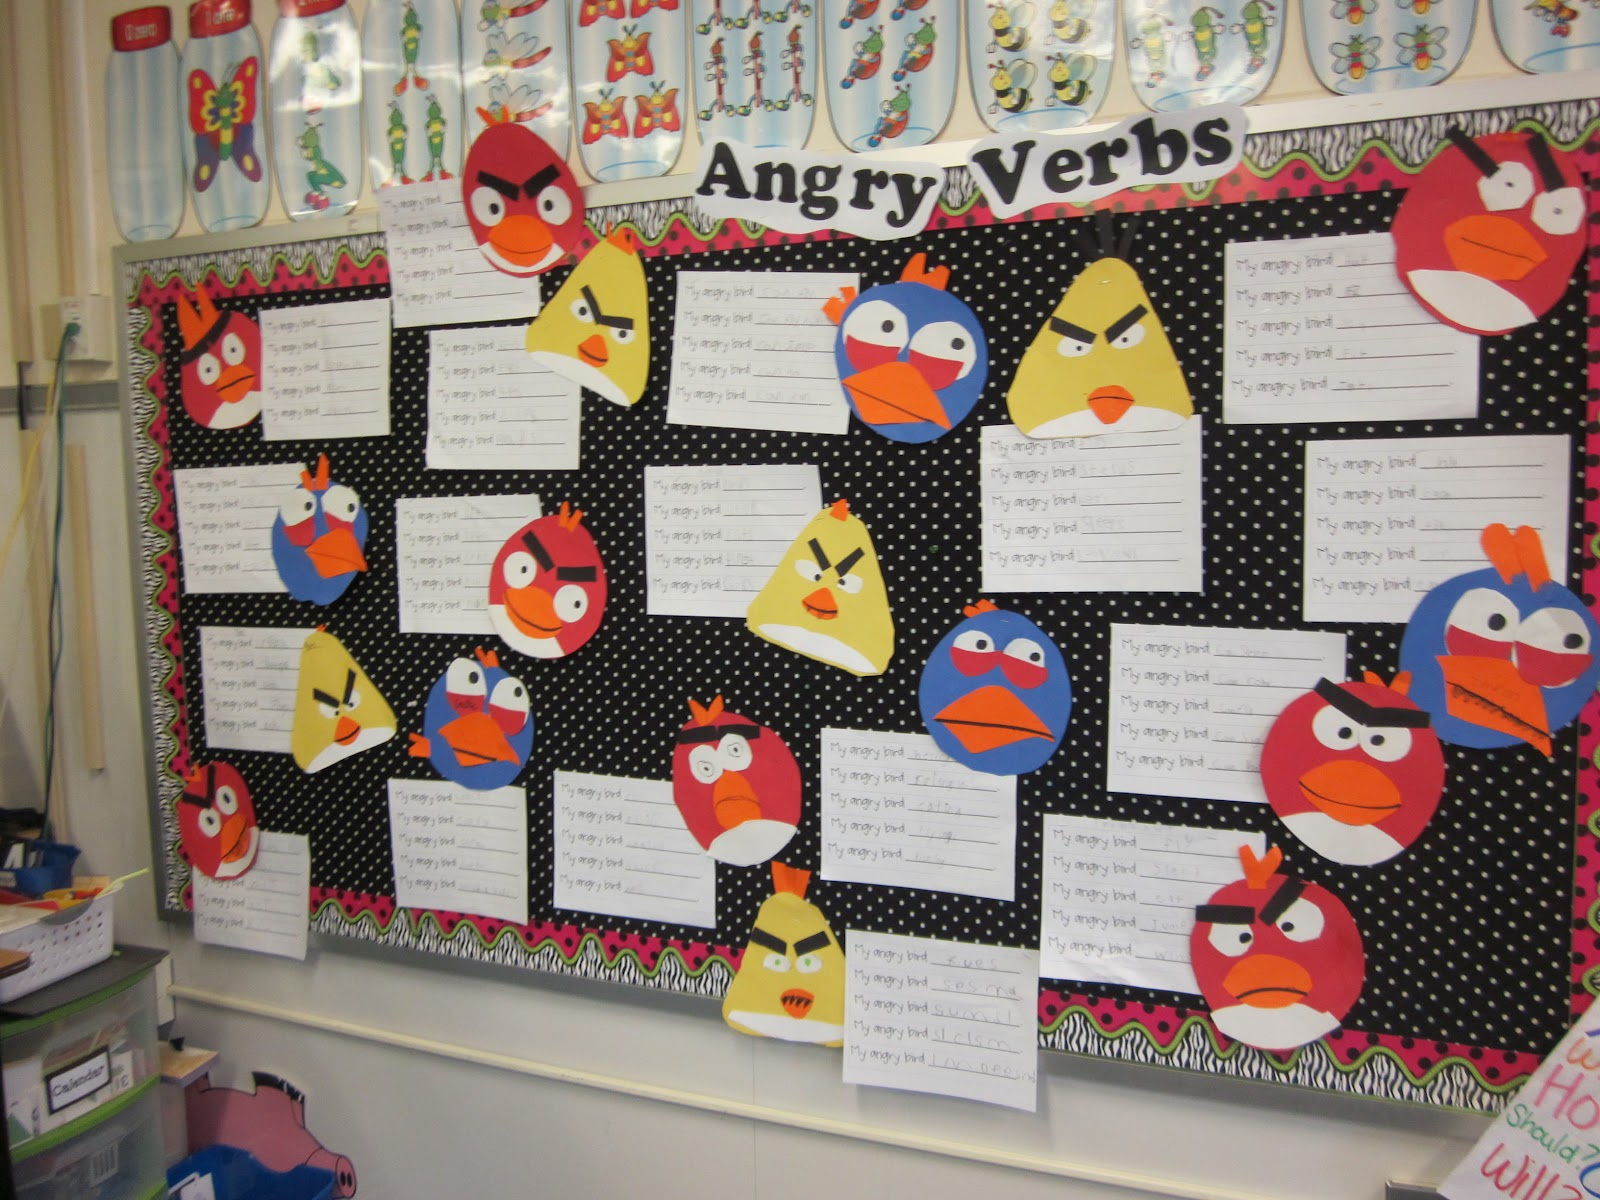 Worksheet Verbs 1st Grade first grade fairytales angry verbs a giveaway the last one kept adding ing from our pete activity but i think he understood so cant complain just yet